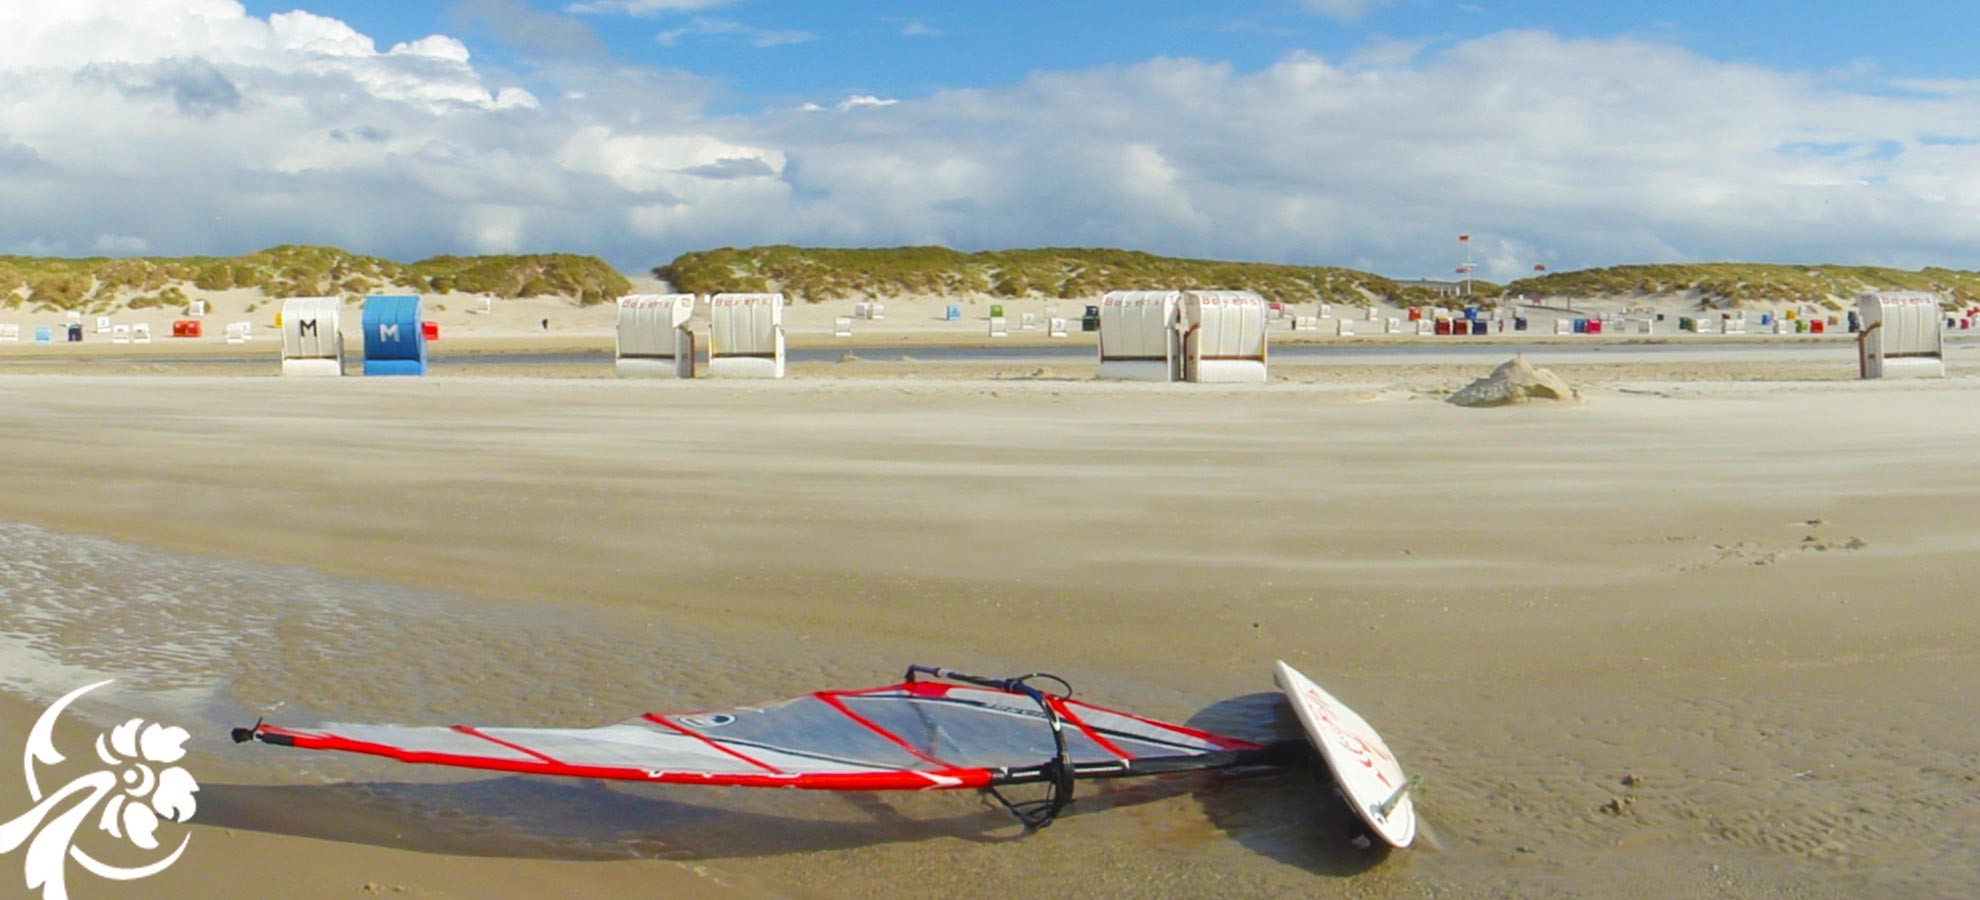 petersen-amrum-surfen